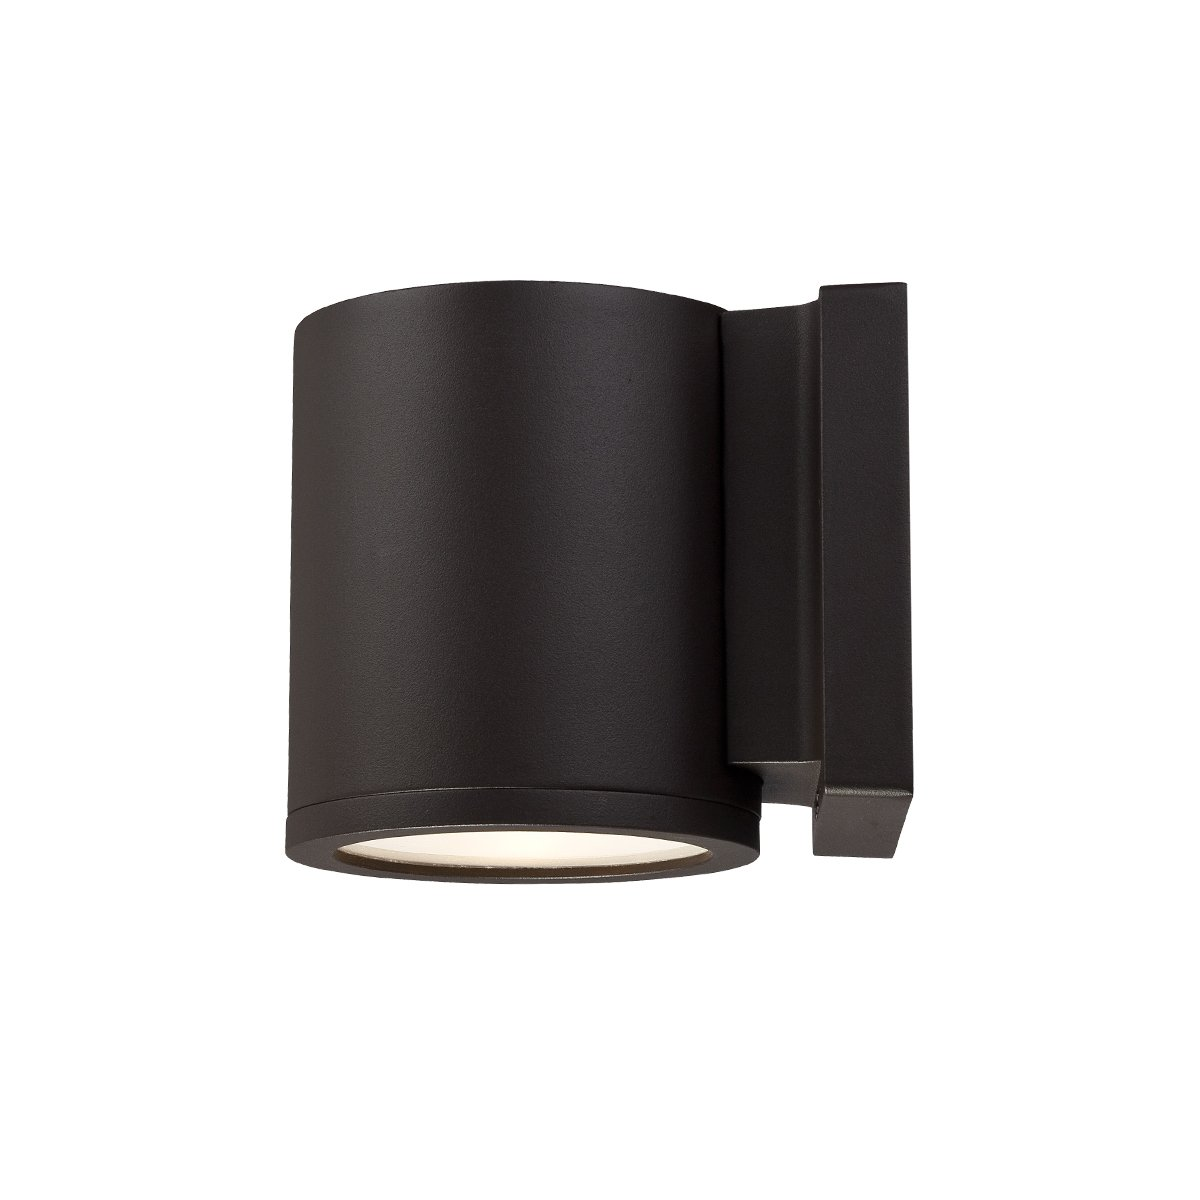 WAC Lighting WS-W2605-BZ Tube LED Outdoor Wall Light Fixture, One Size, White/Bronze